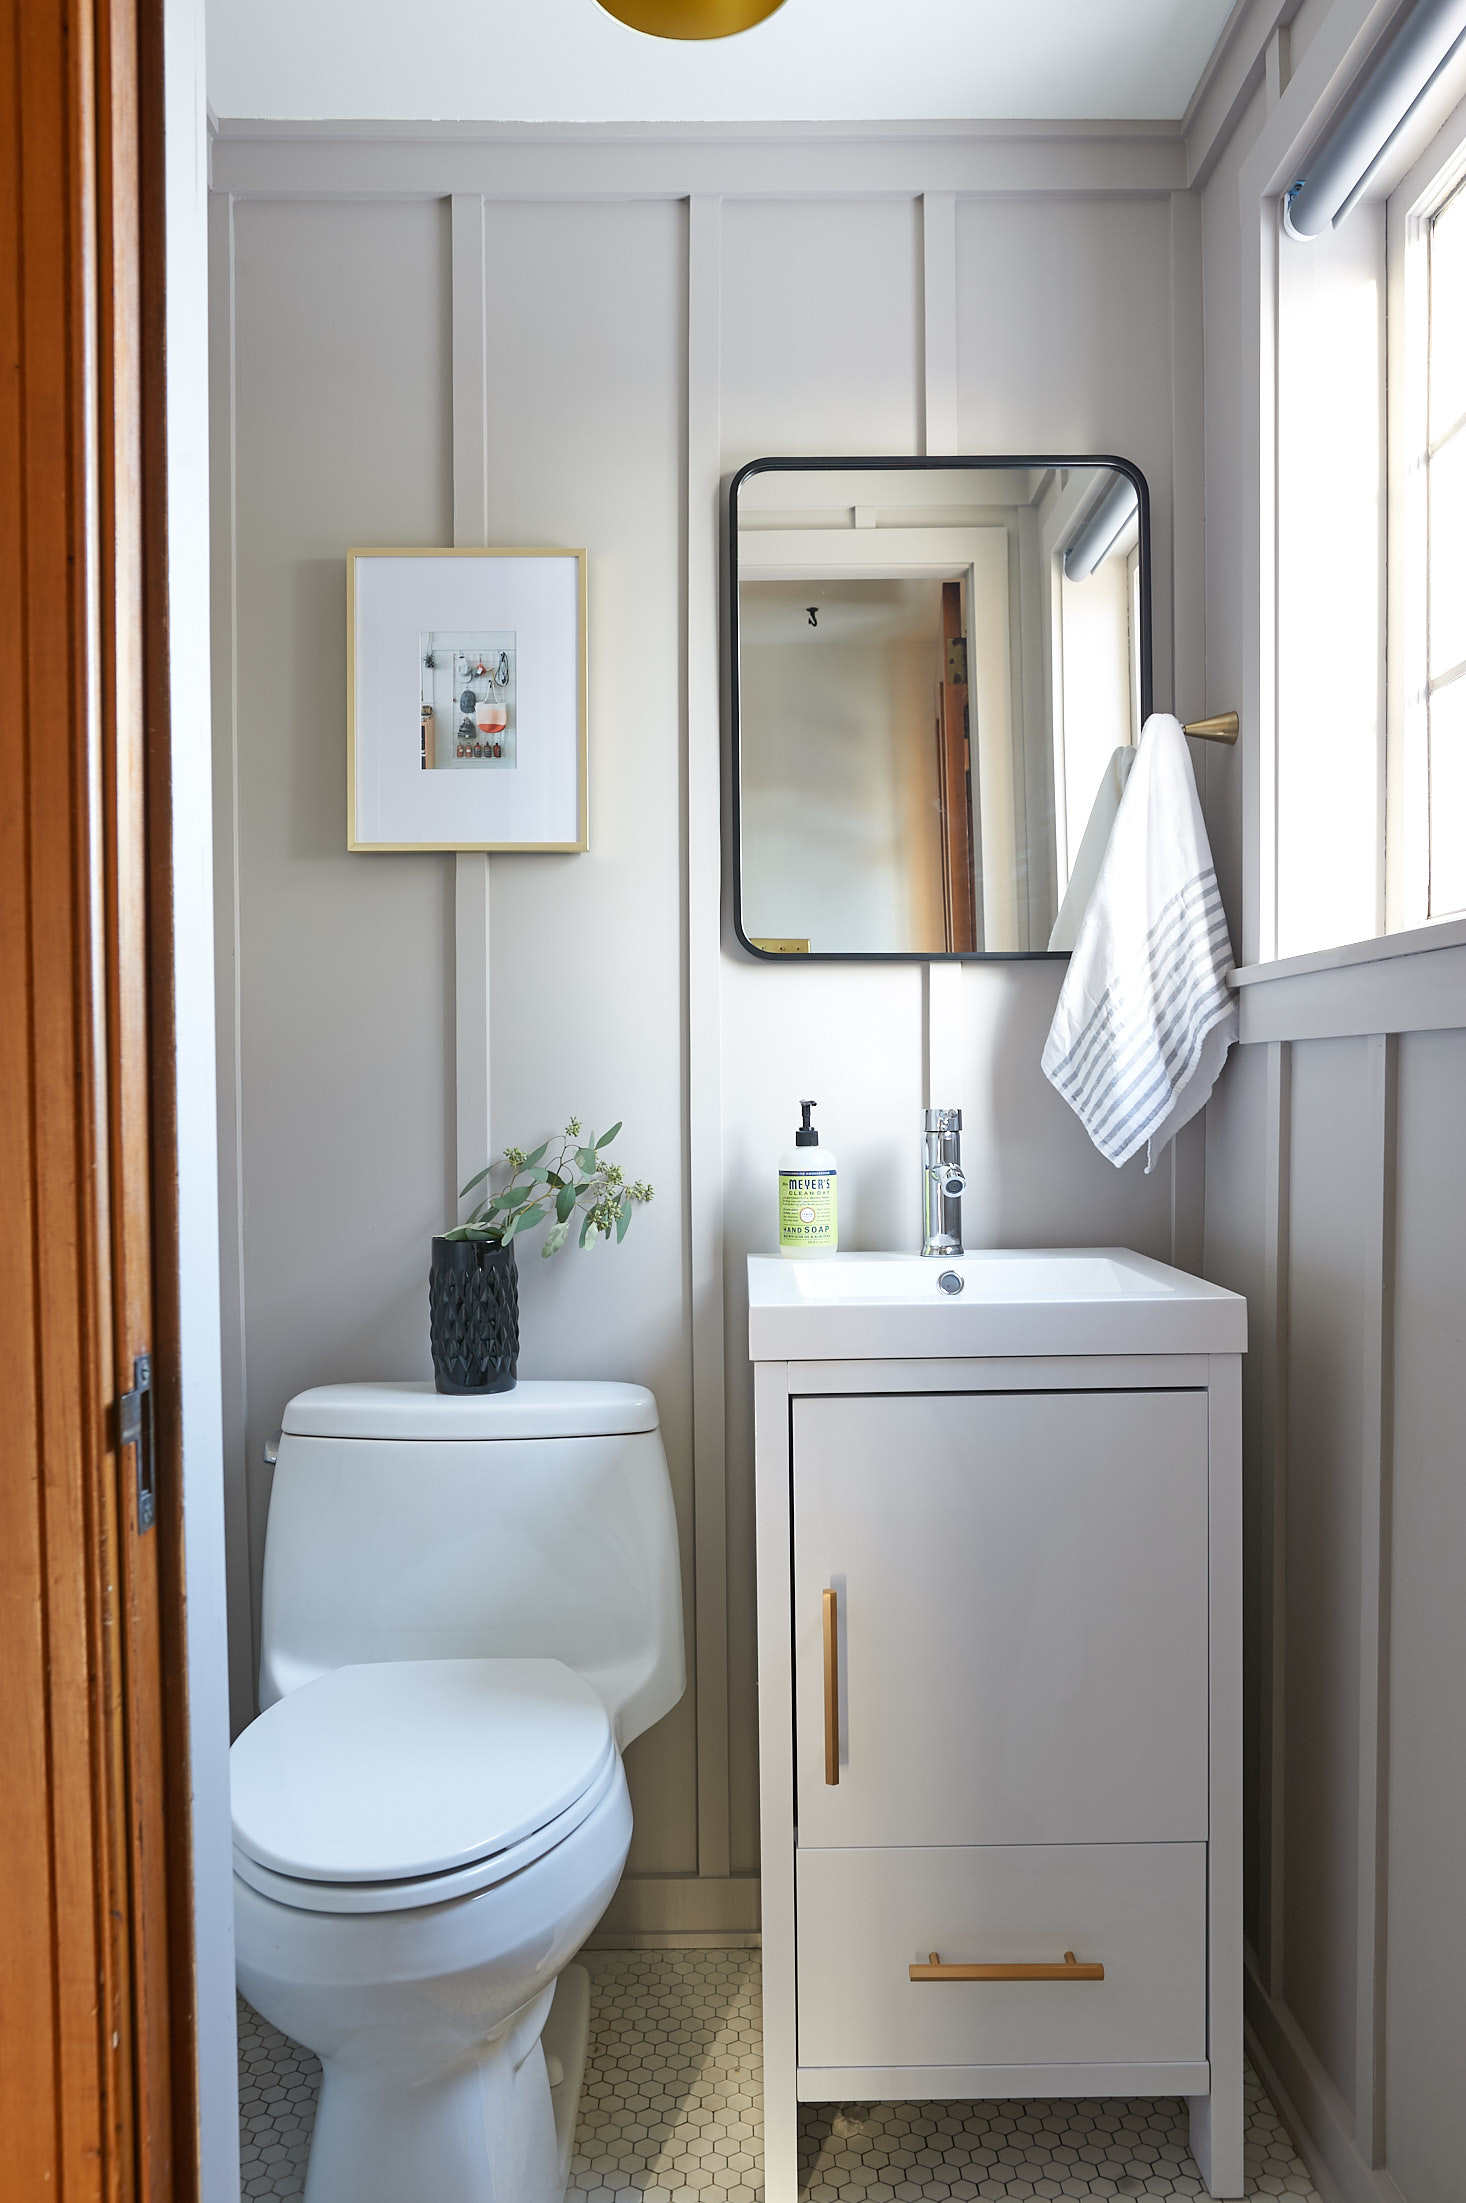 Powder Room - After | The Sweet Beast Blog